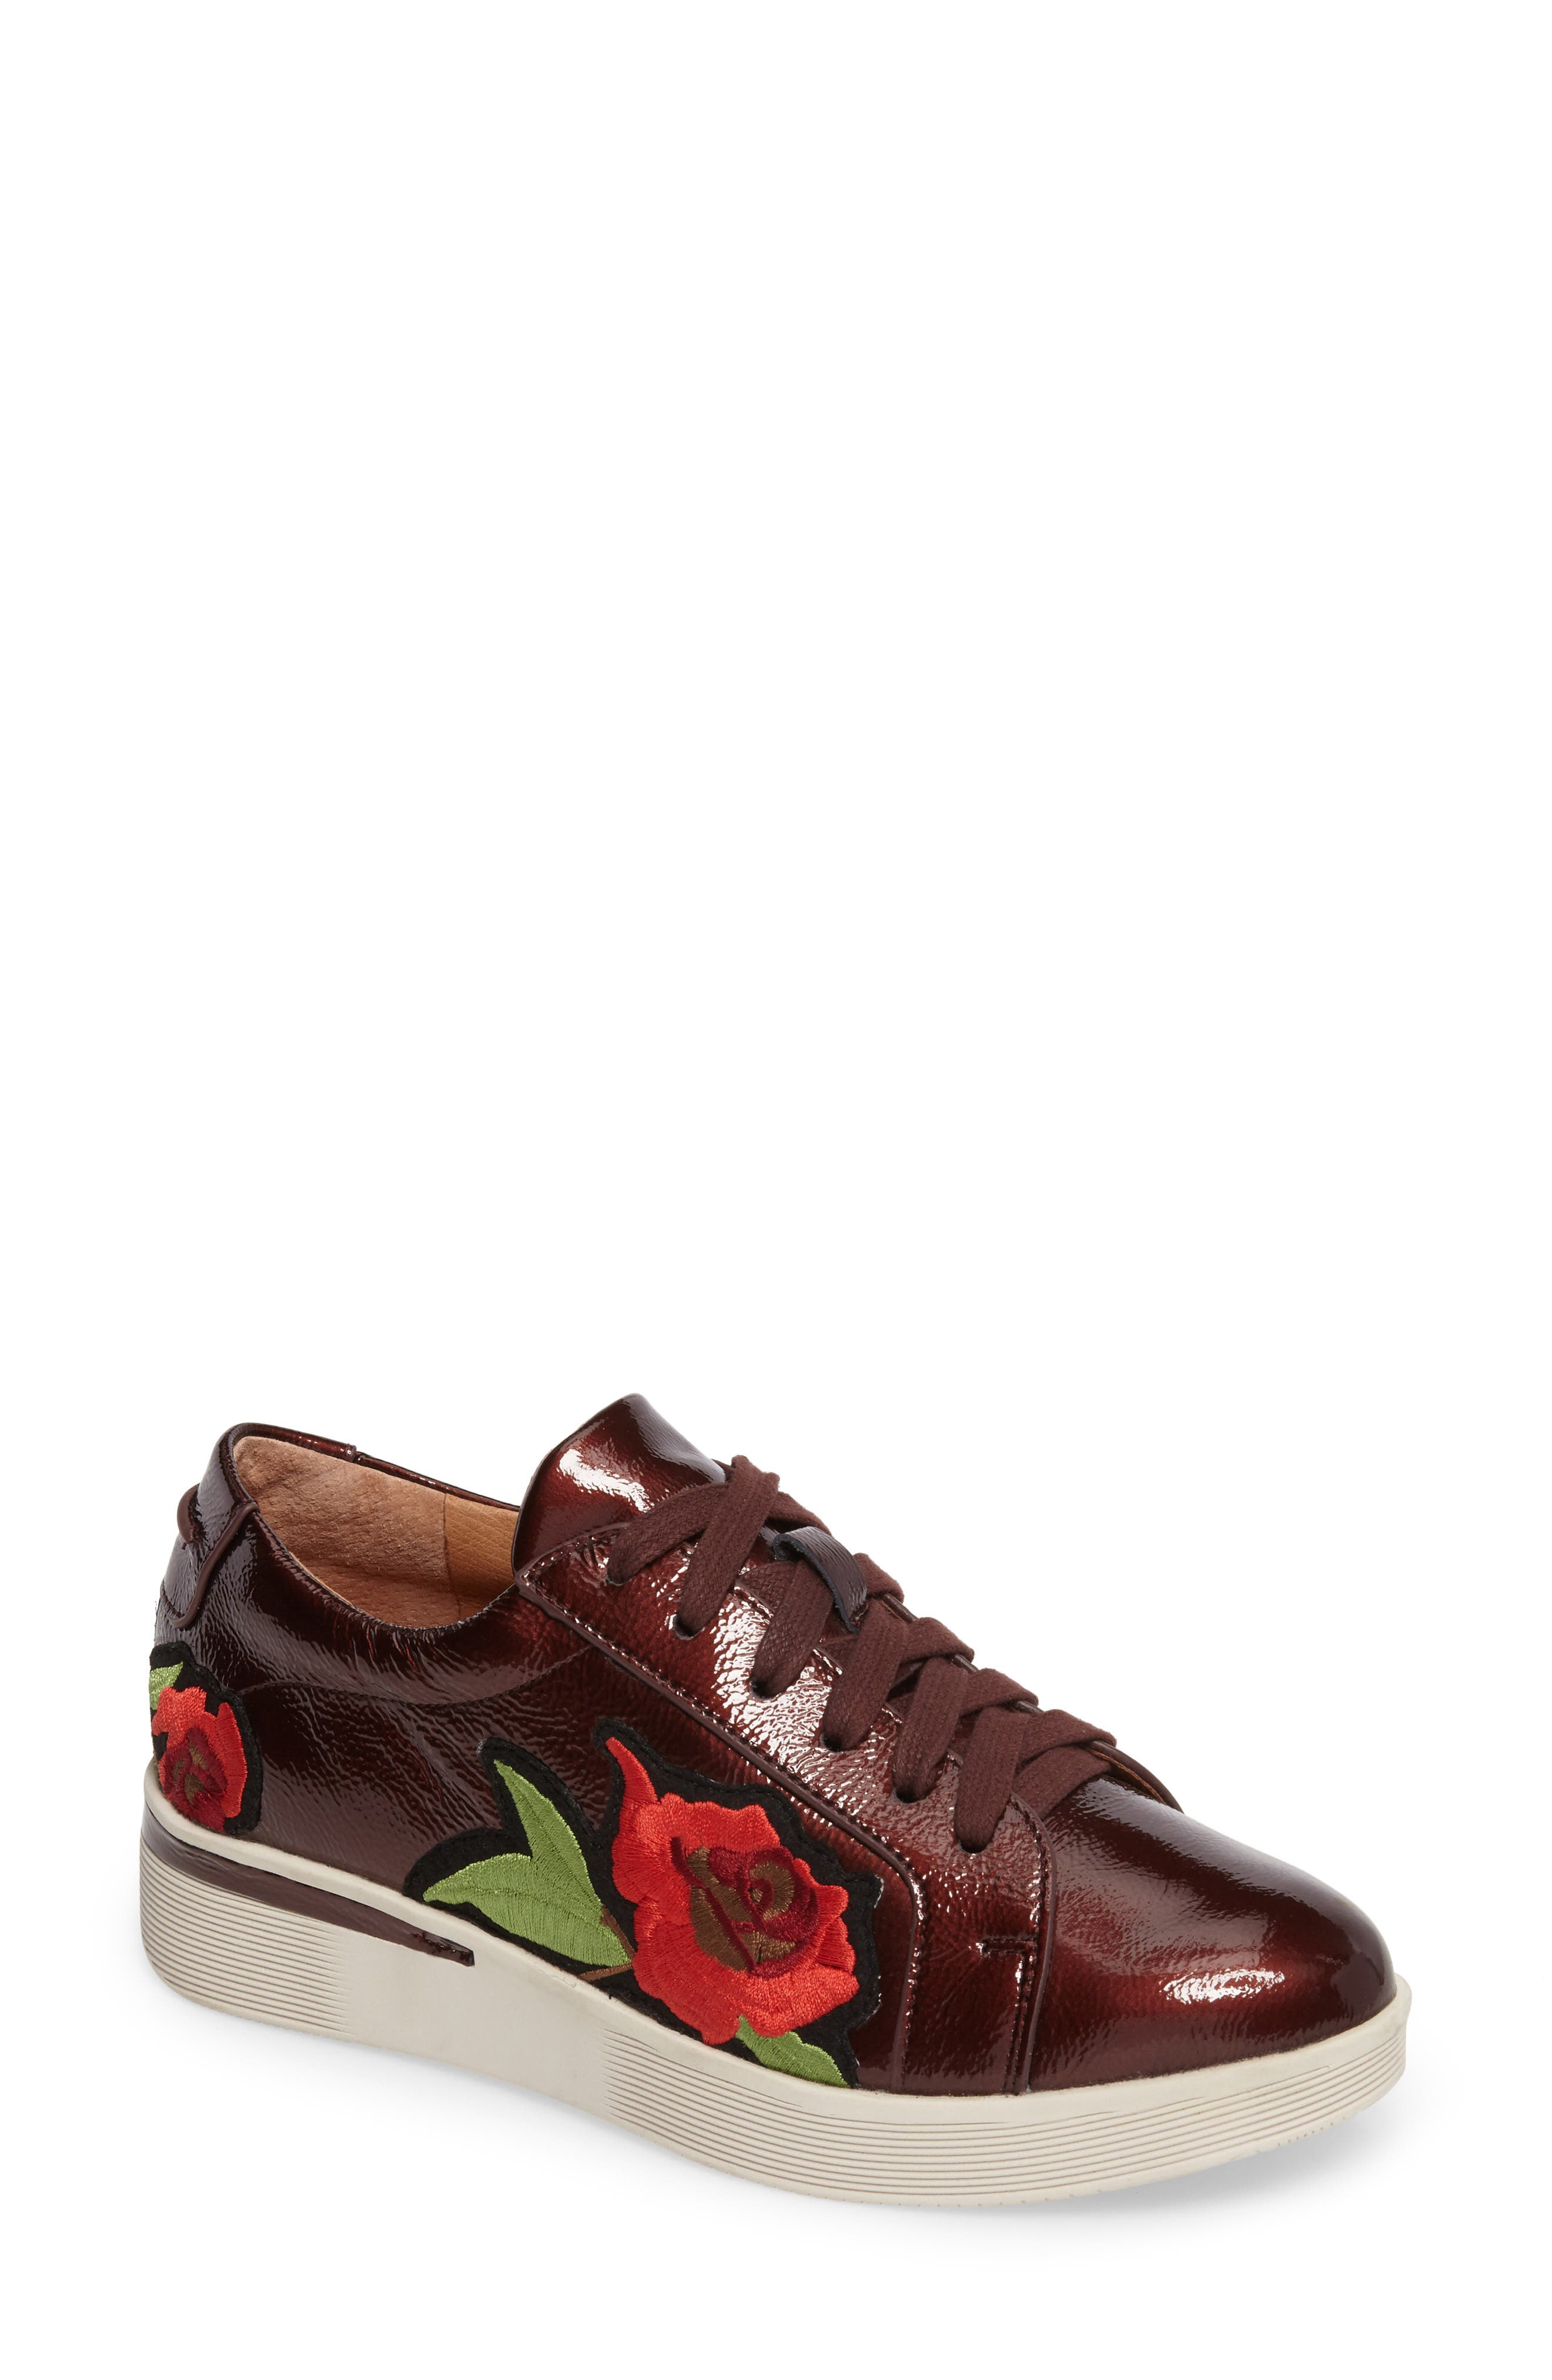 Gentle Soles Haddie Rose Sneaker,                             Main thumbnail 1, color,                             Wine Patent Leather